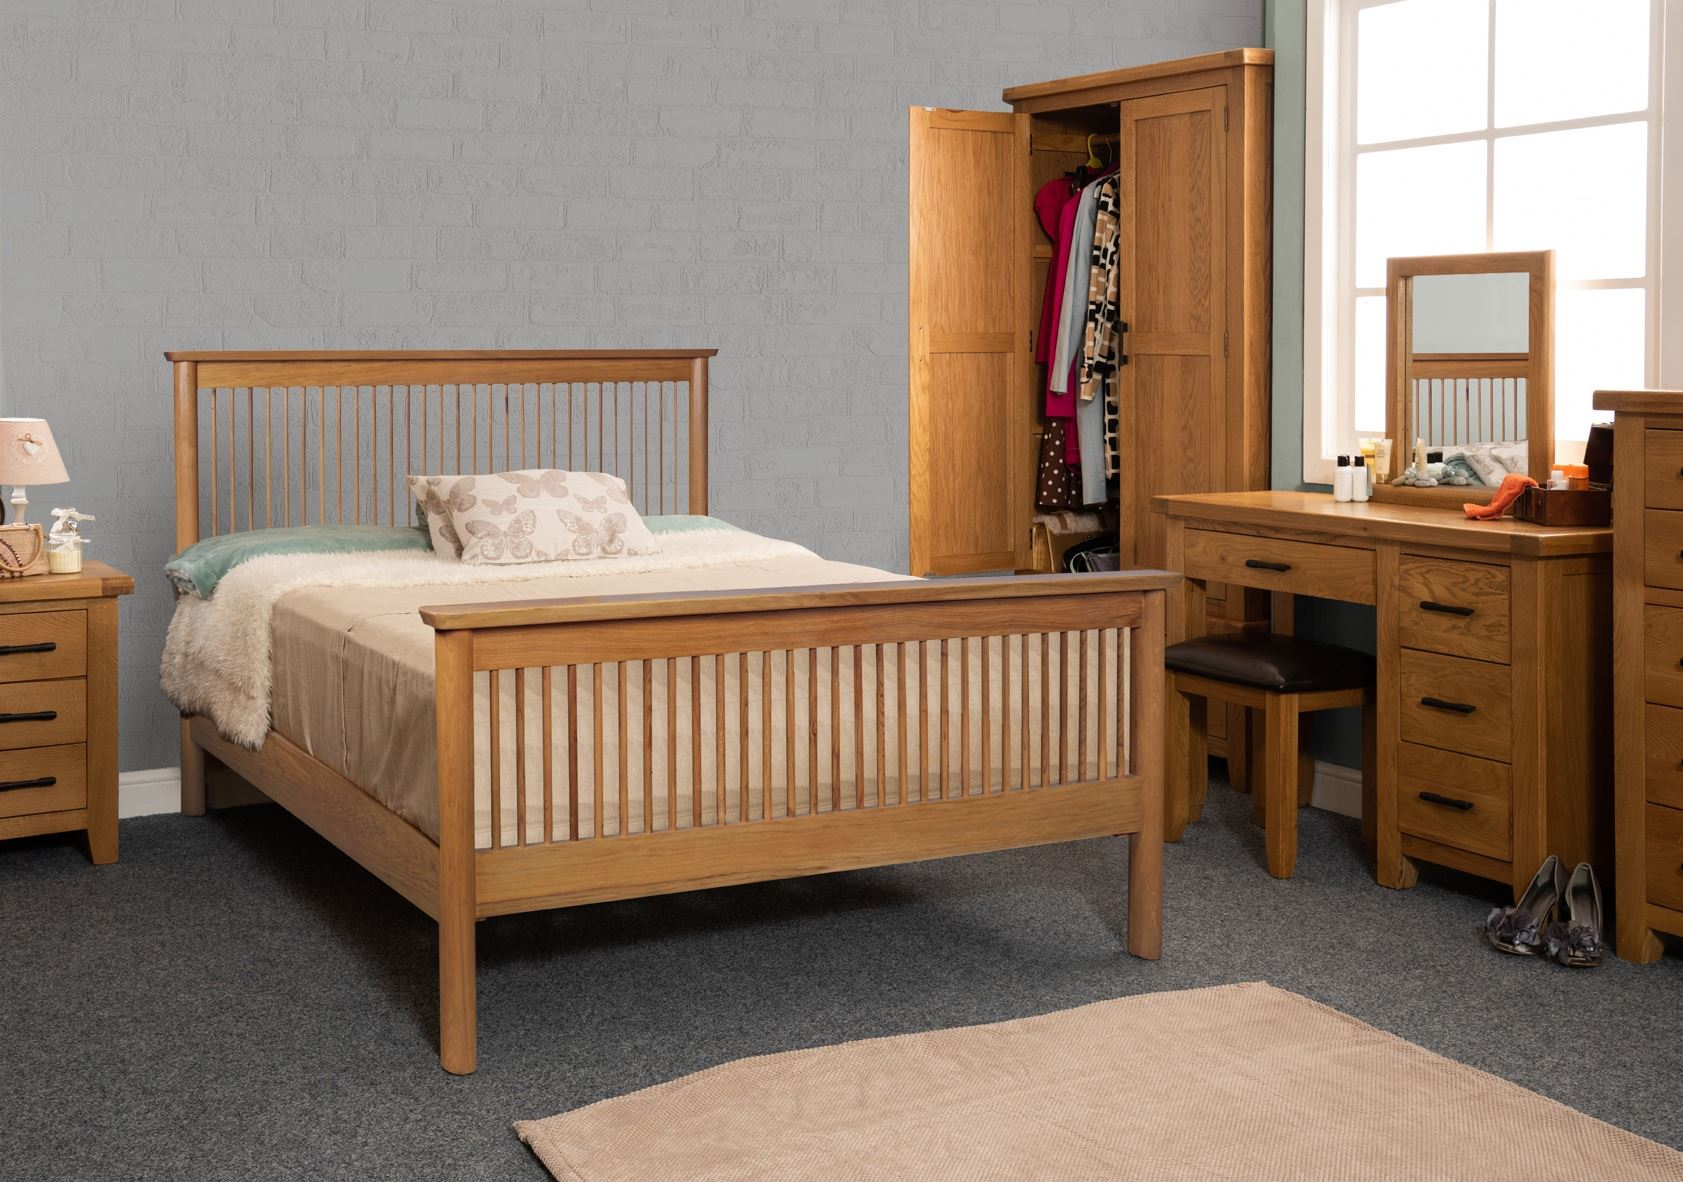 Sweet Dreams Jacob Solid Oak Wood Bed Frame 5FT 150cm King Size Pine Wooden